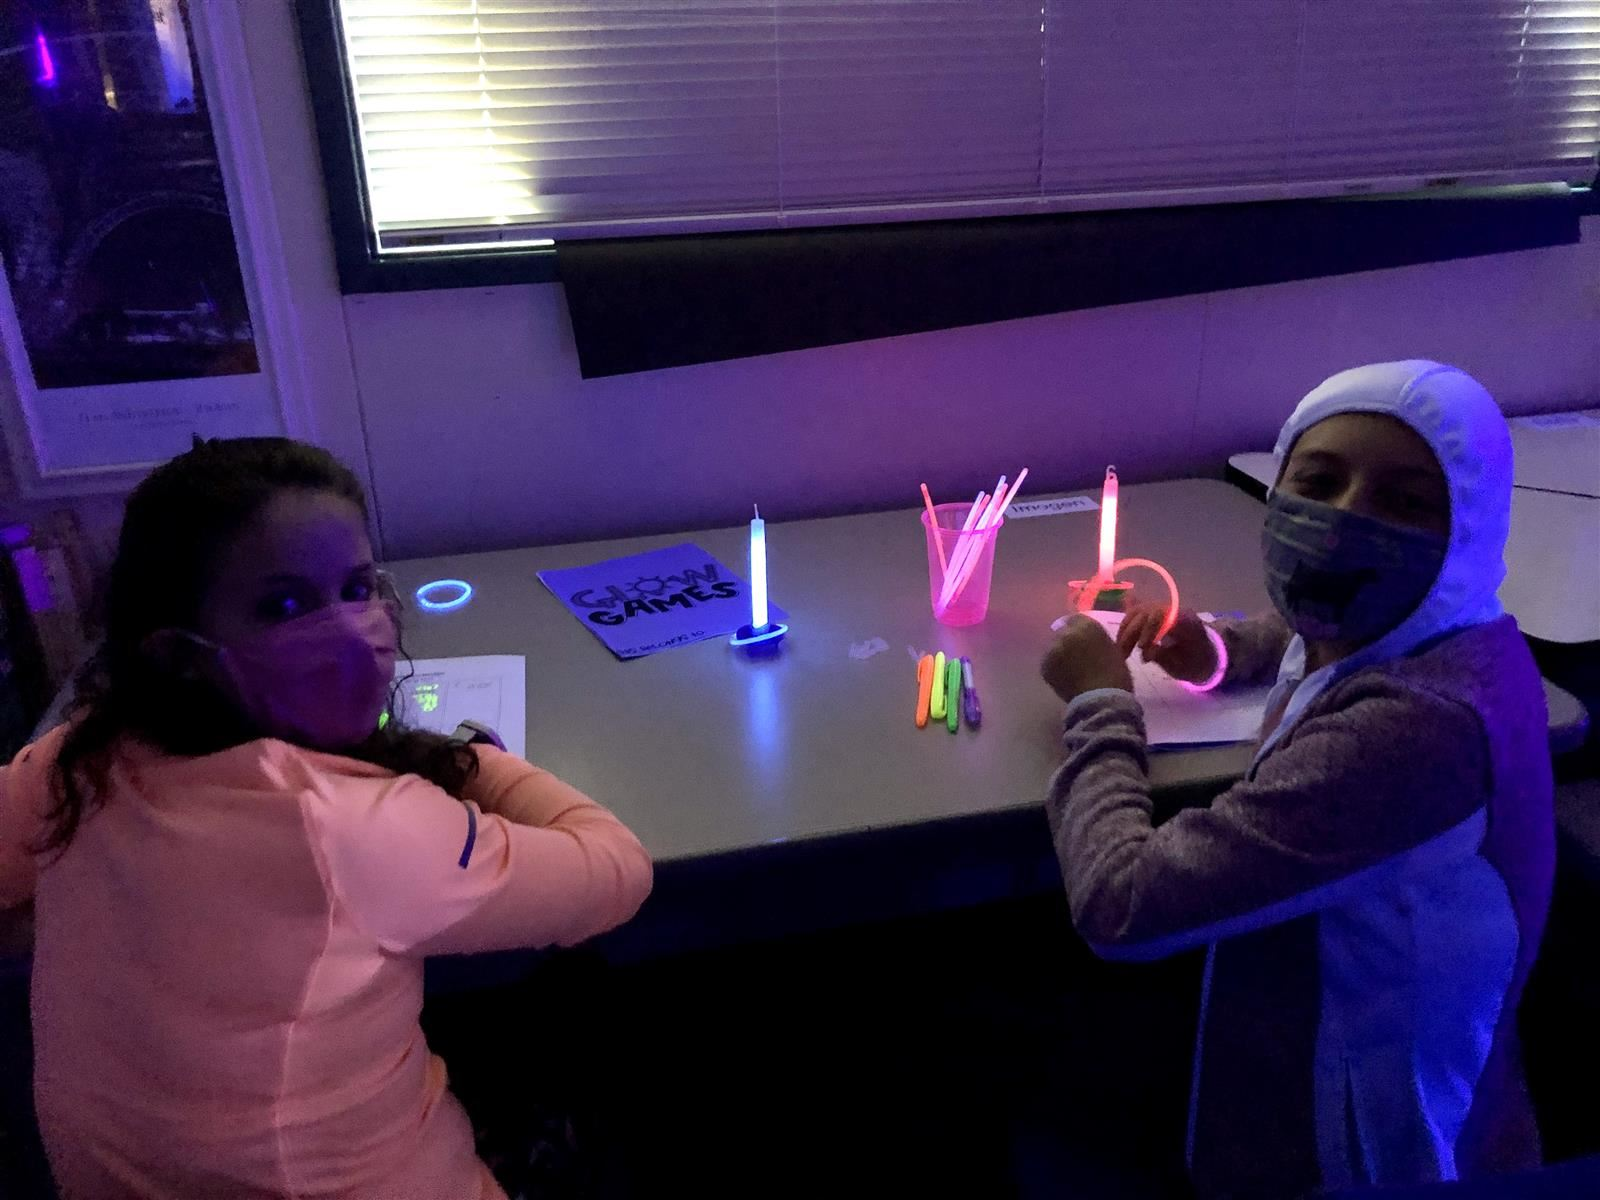 Two students at a desk doing glow-in-the dark math